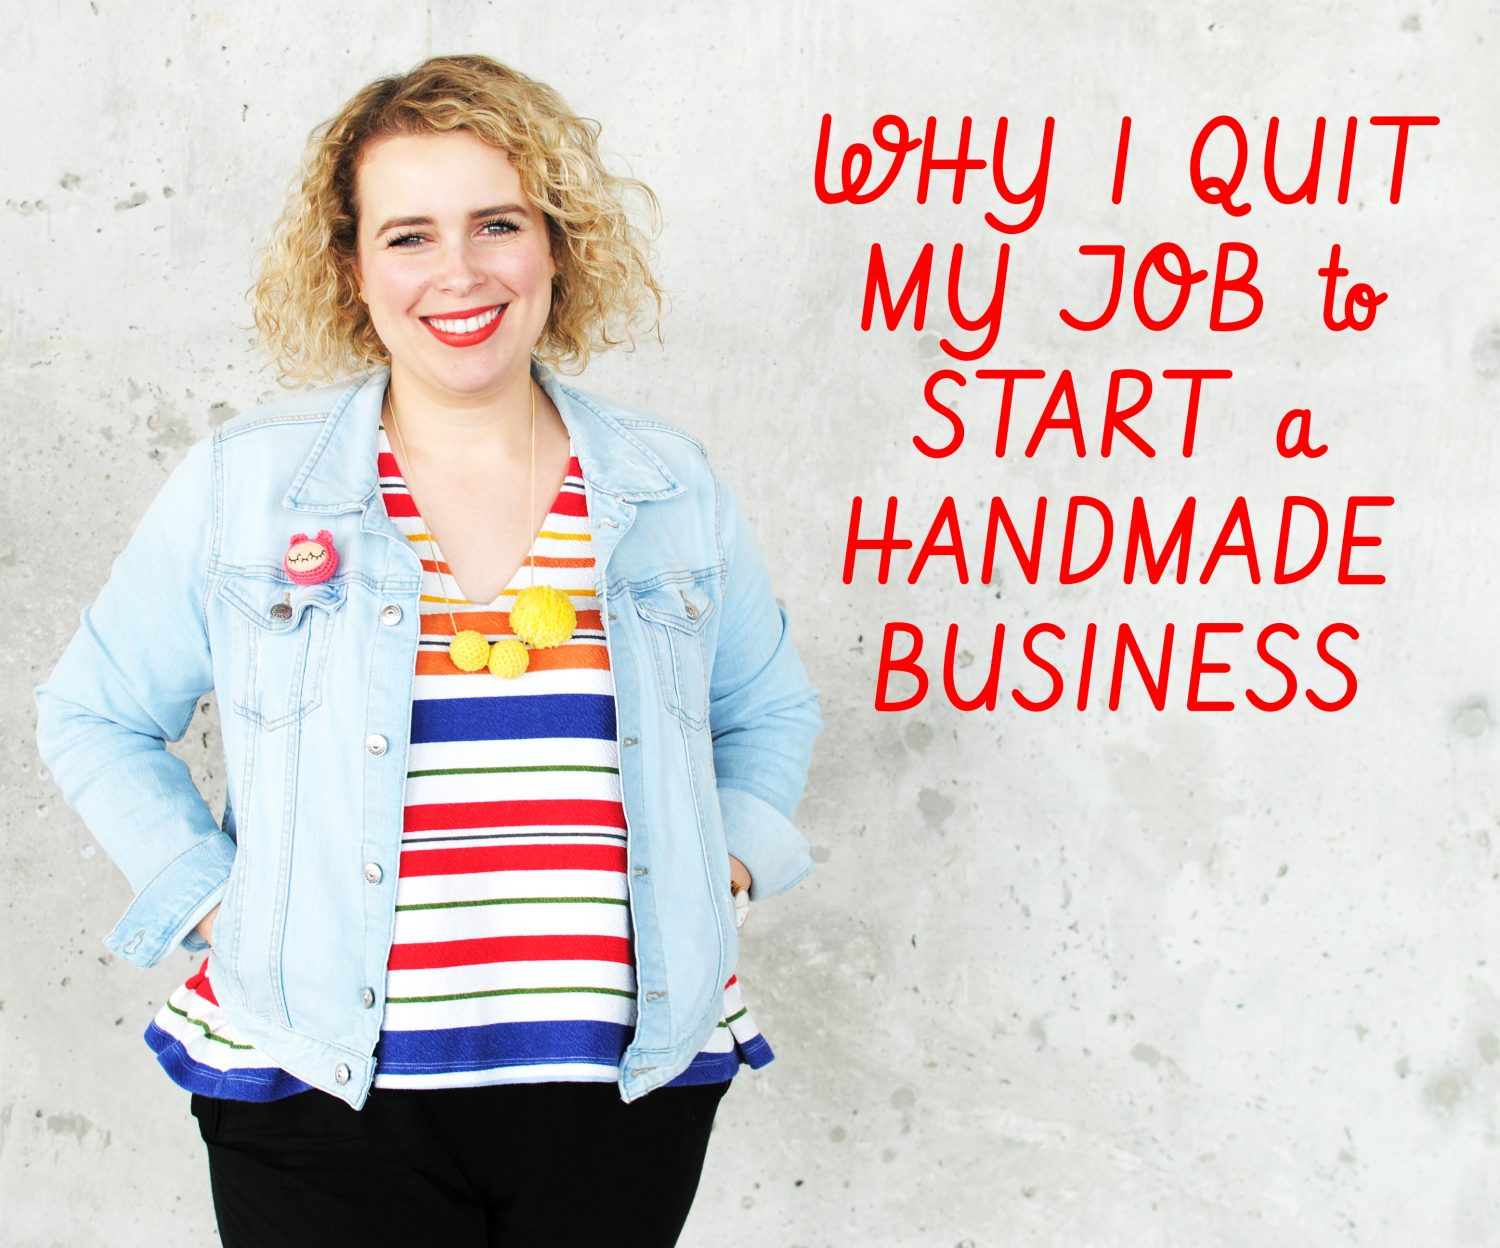 Why I Quit My Job to Start a Handmade Business